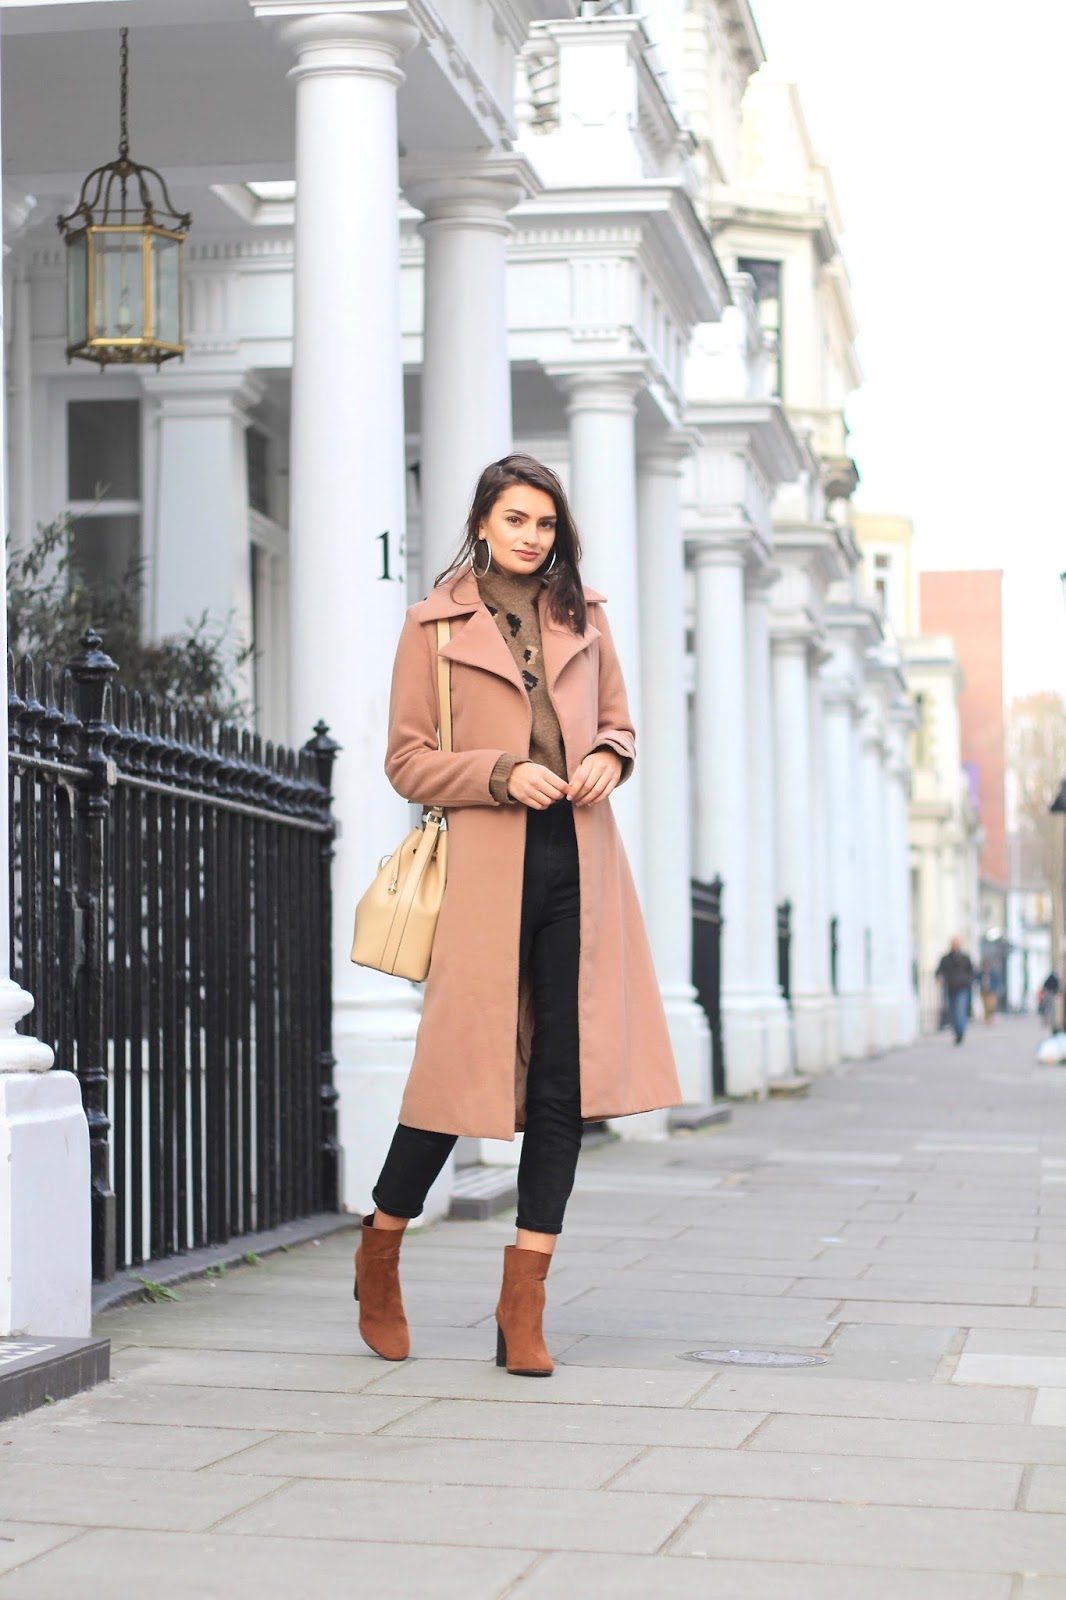 styling neutrals peexo fashion blogger london